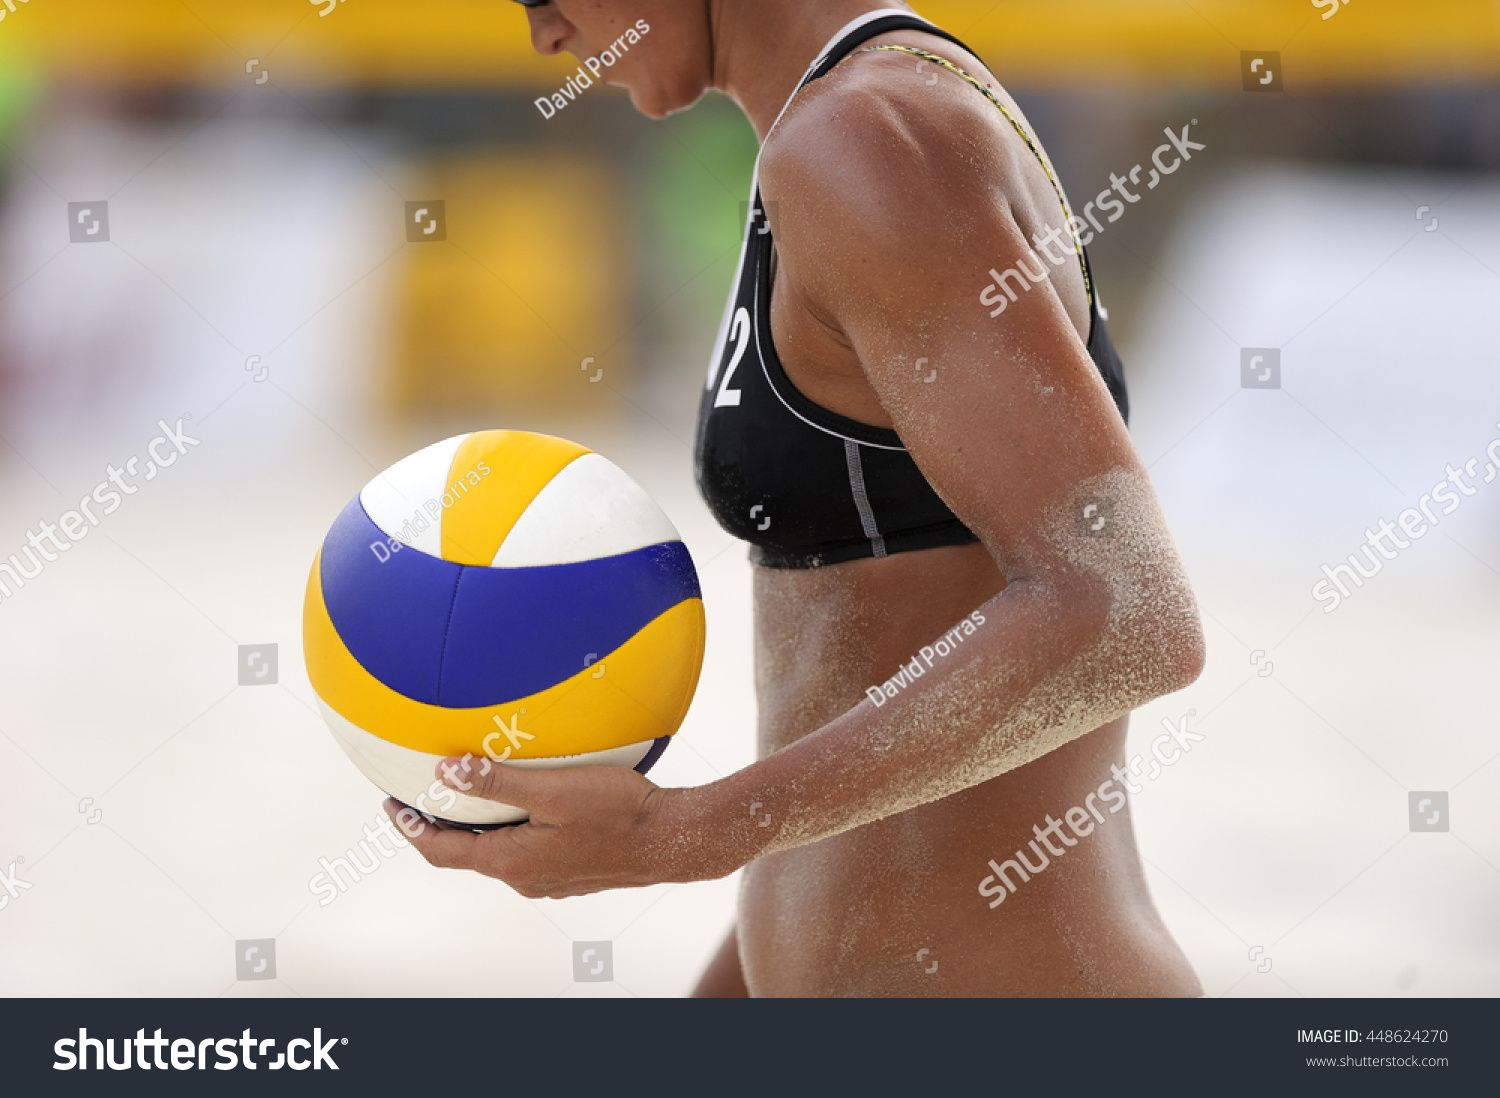 Volleyball Beach Player Is A Female Athlete Volleyball Player Getting Ready To Serve The Ball On The Beach Ad Sponsored Female Athletes Athlete Volleyball